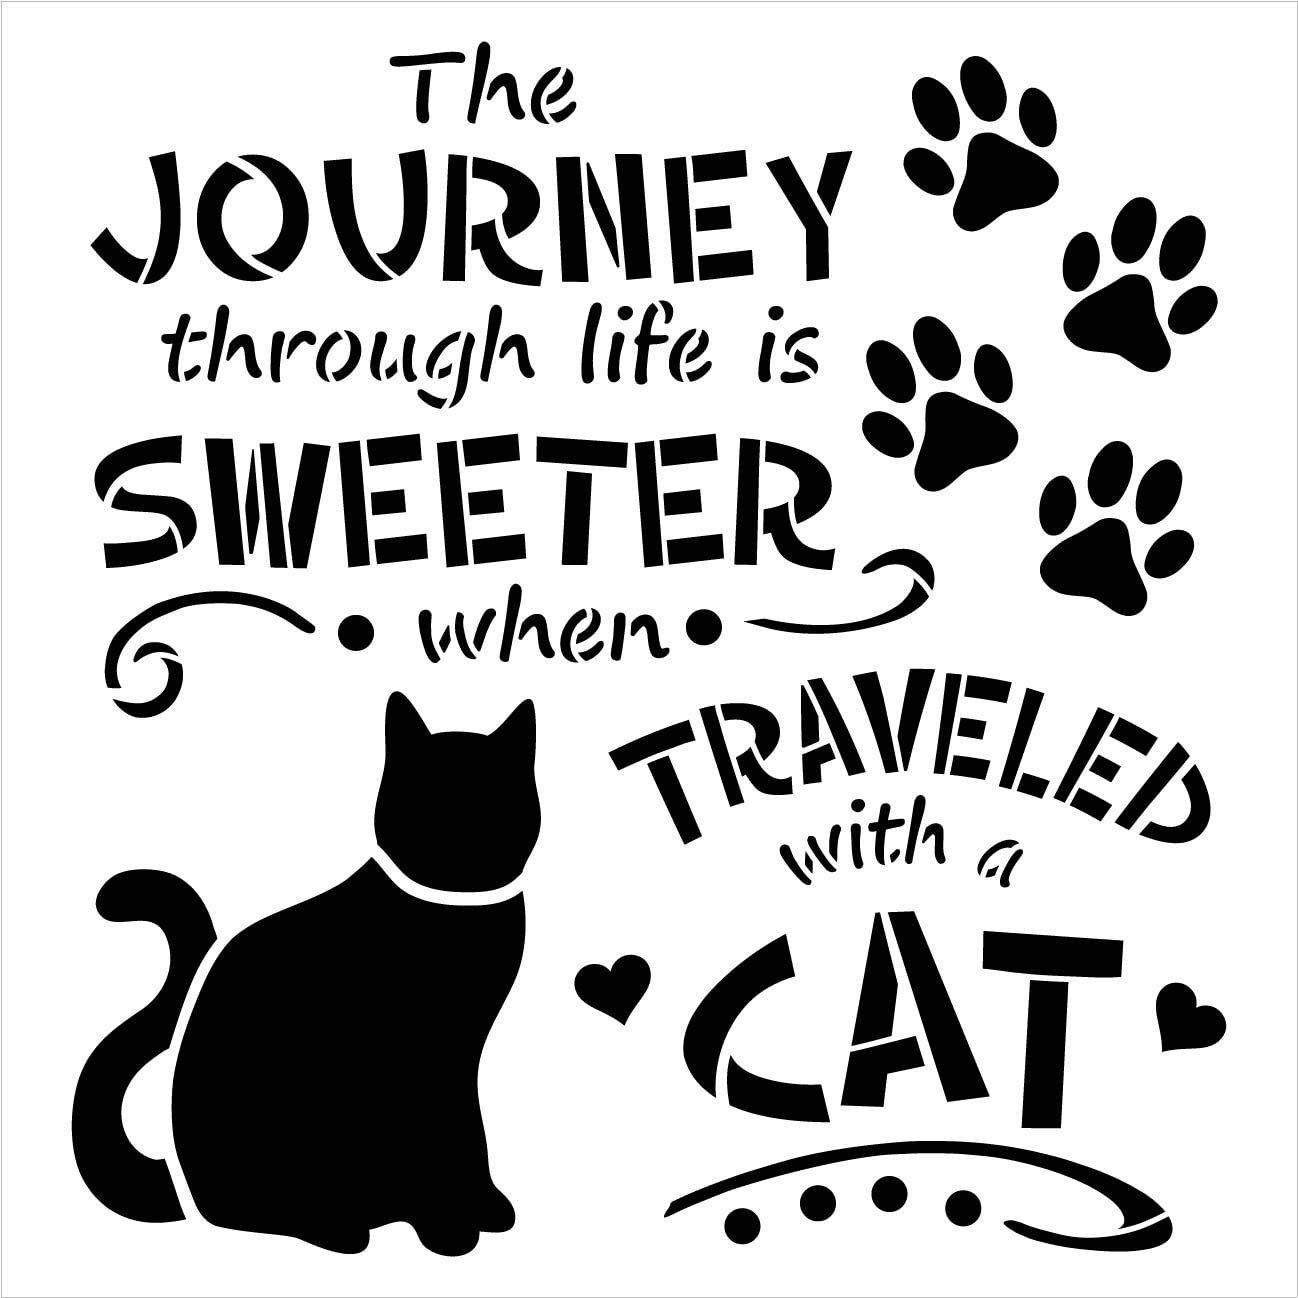 Journey Sweeter Traveled with Cat Stencil by StudioR12 | DIY Kitten Lover Home Decor | Craft & Paint Wood Sign | Reusable Mylar Template | Pawprint Heart Gift | Select Size